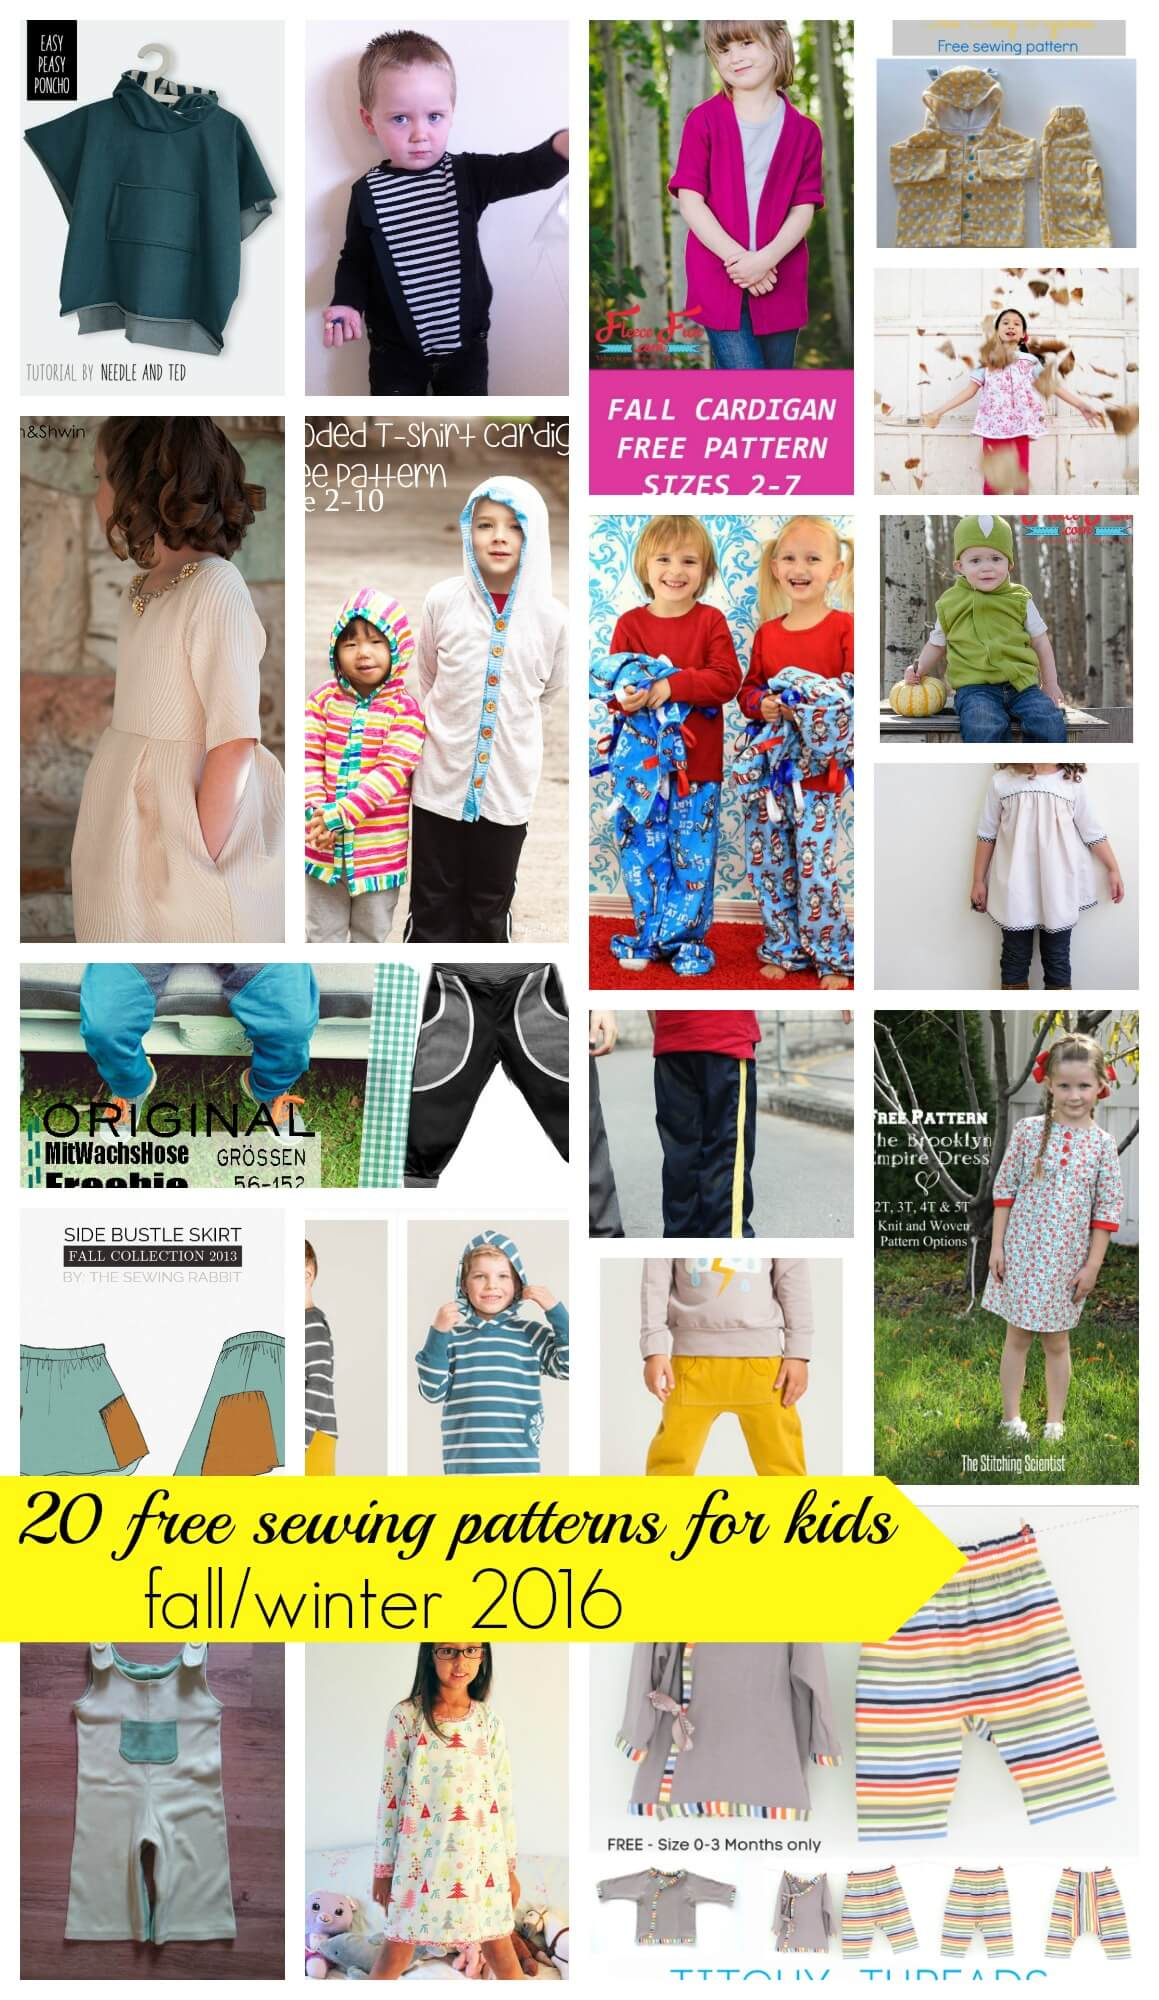 20 free sewing patterns for kids winterfall 2016 life sew savory free sewing patterns for kids winterfall 2016 from nap time creations jeuxipadfo Images